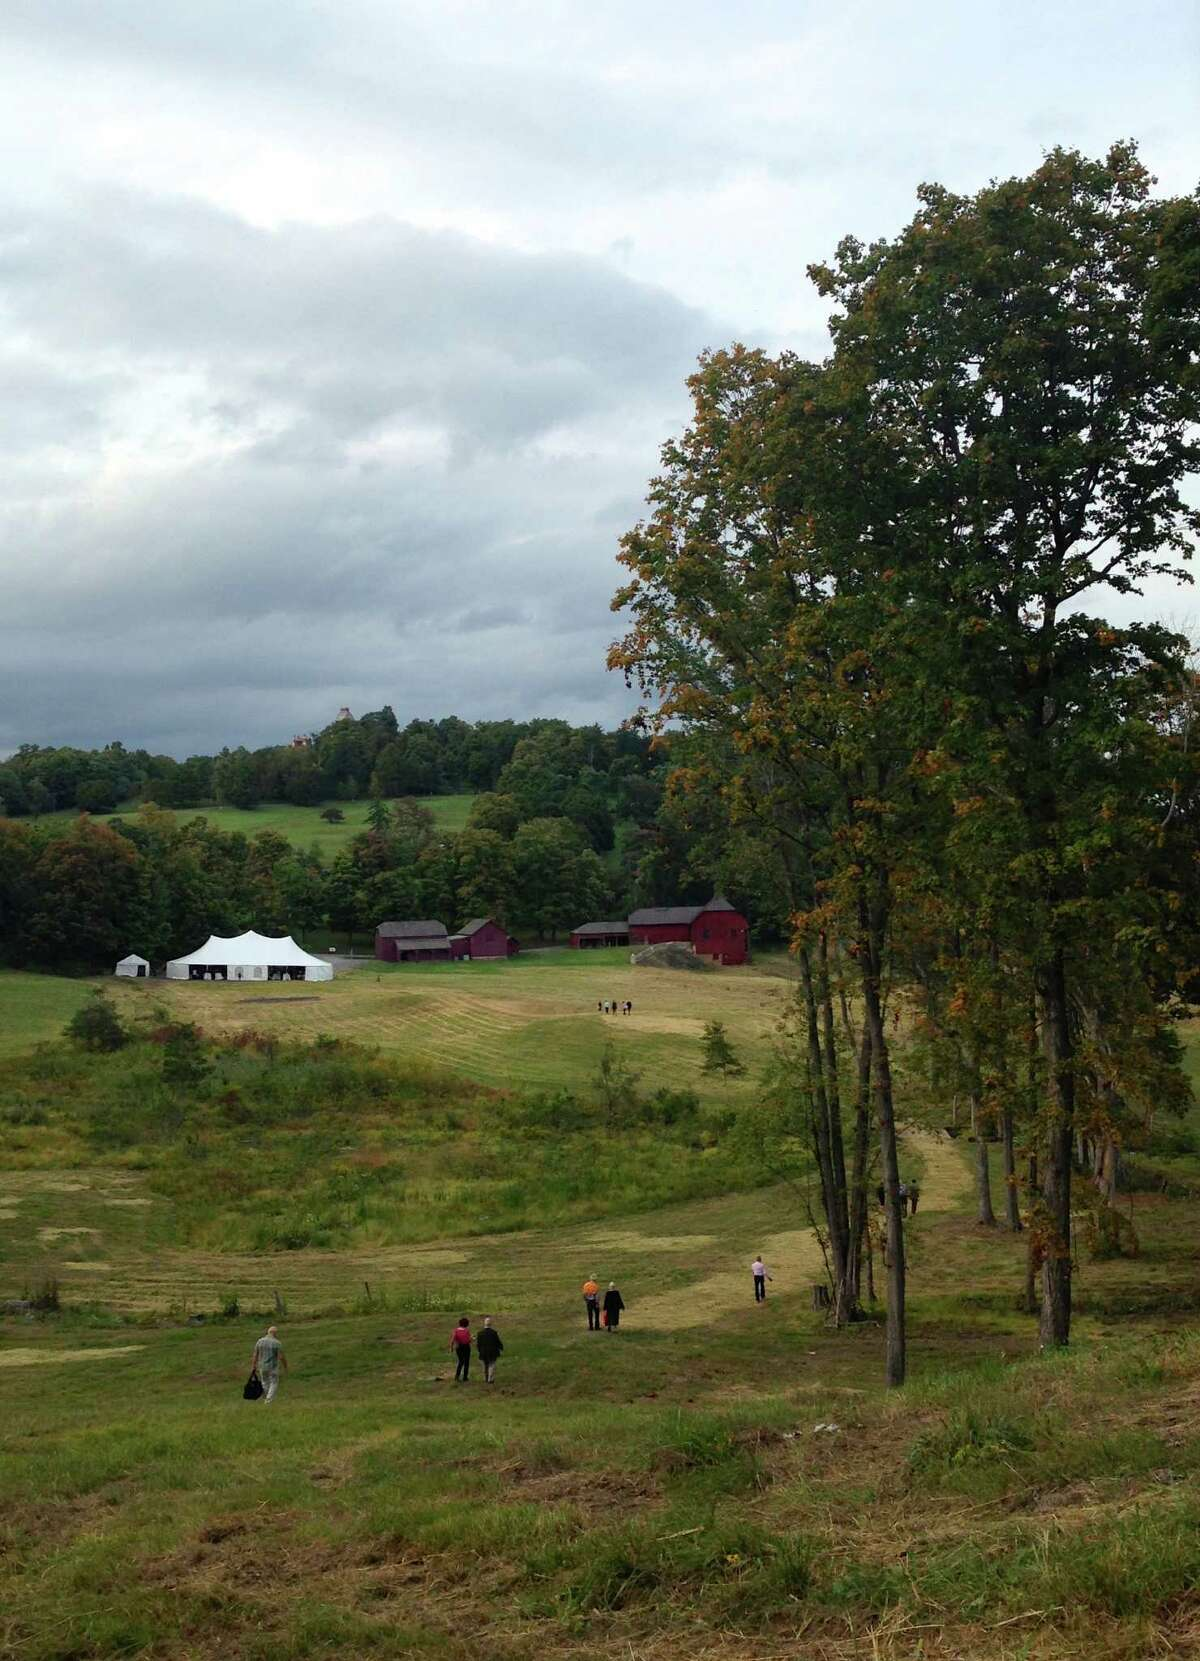 View from Crown Hill during Olanafest 2013. (Photo by Stephanie Zhang)